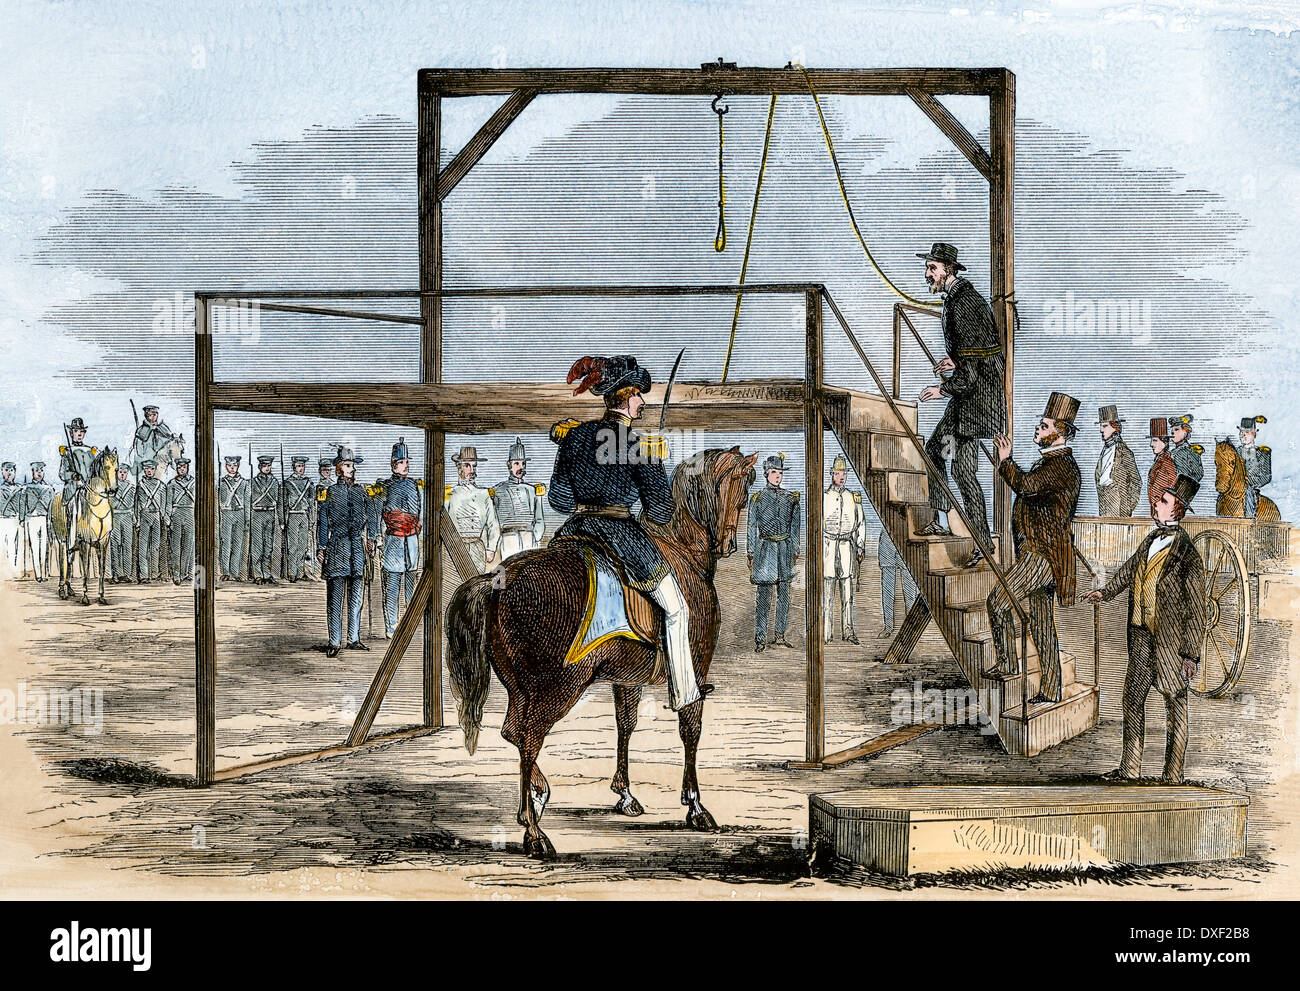 John Brown ascending the scaffold for his execution, 1859. Hand-colored woodcut - Stock Image